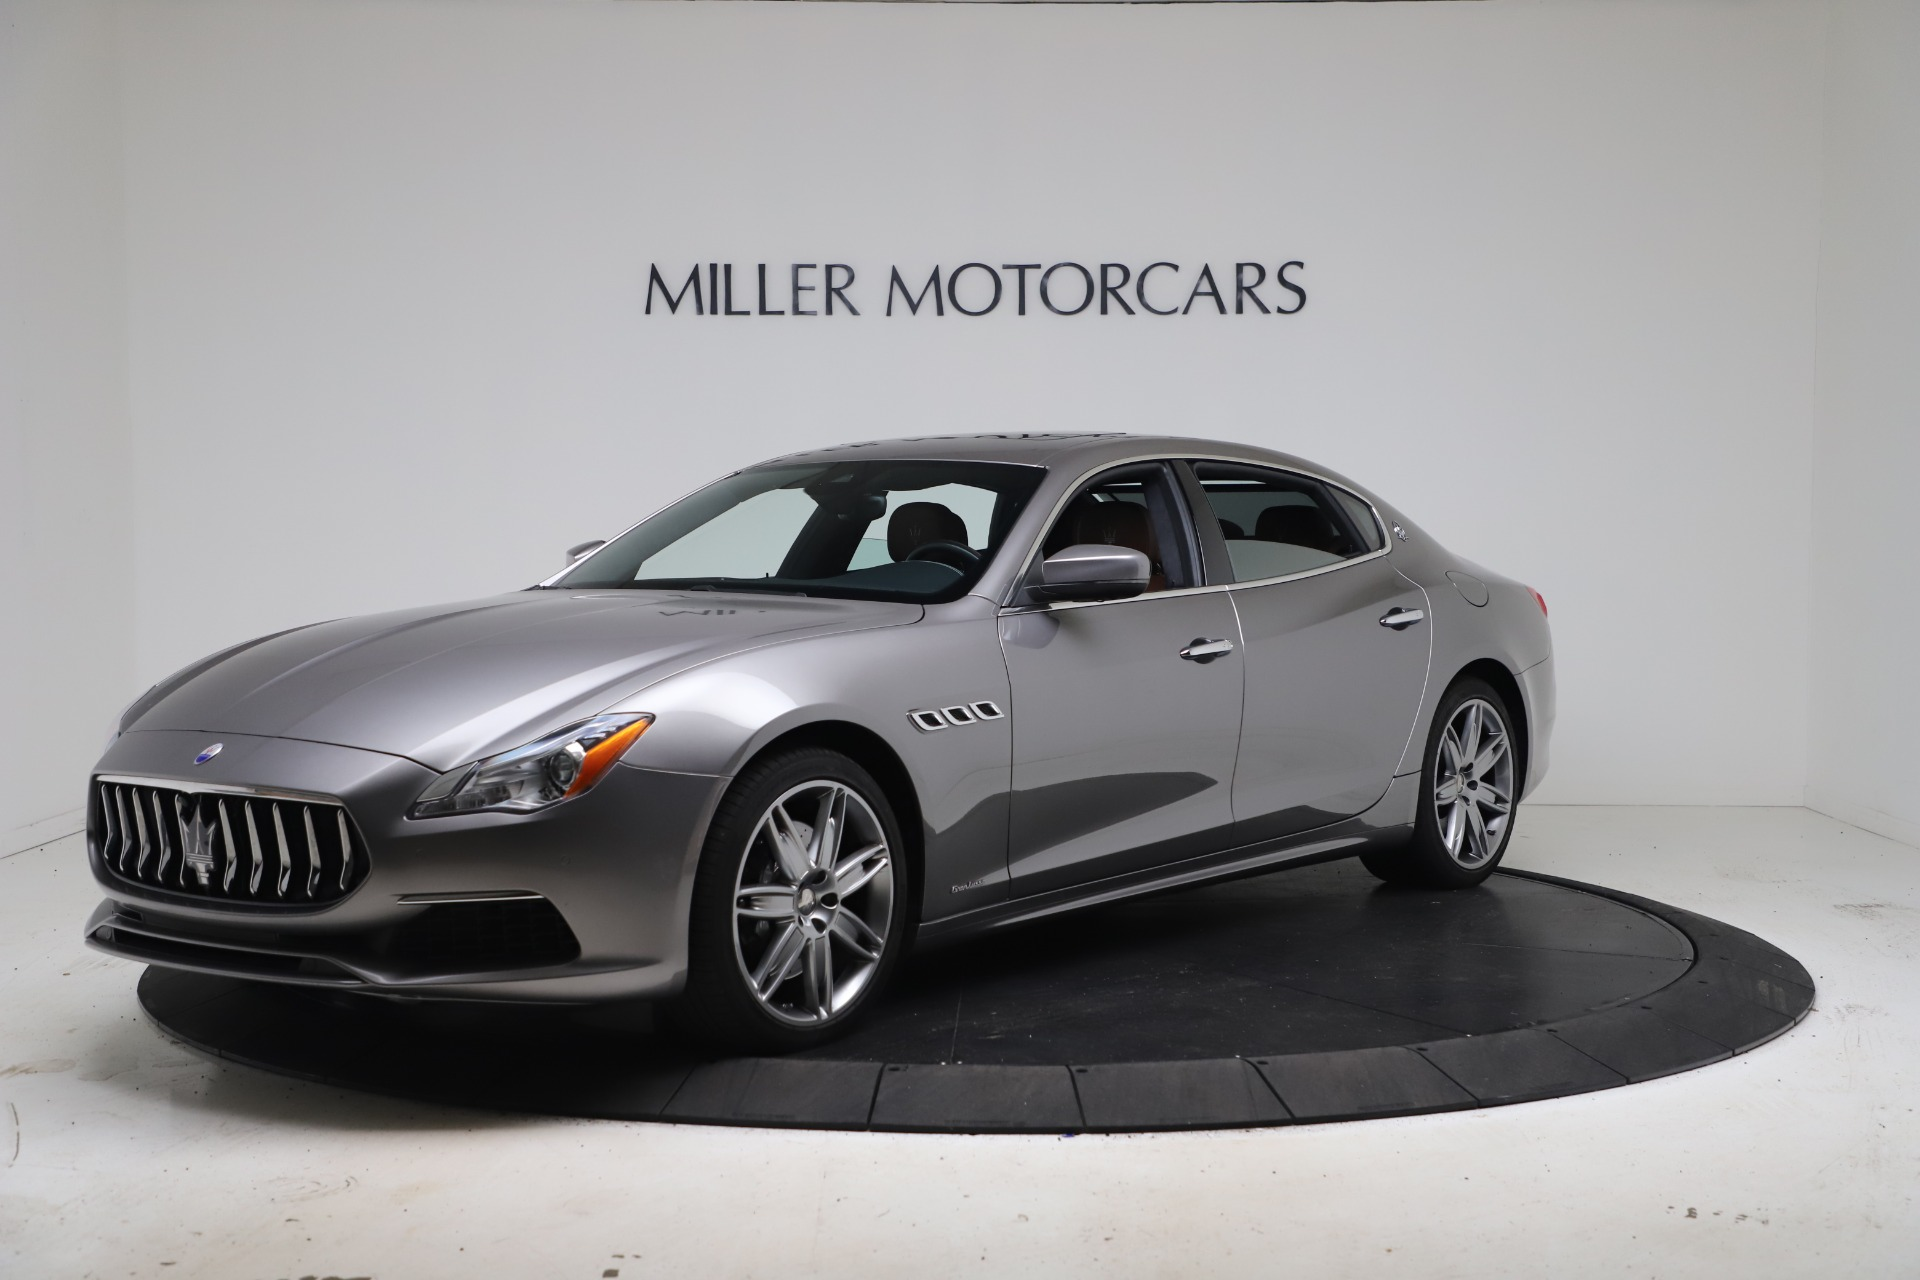 New 2017 Maserati Quattroporte SQ4 GranLusso/ Zegna For Sale In Westport, CT 1355_p2